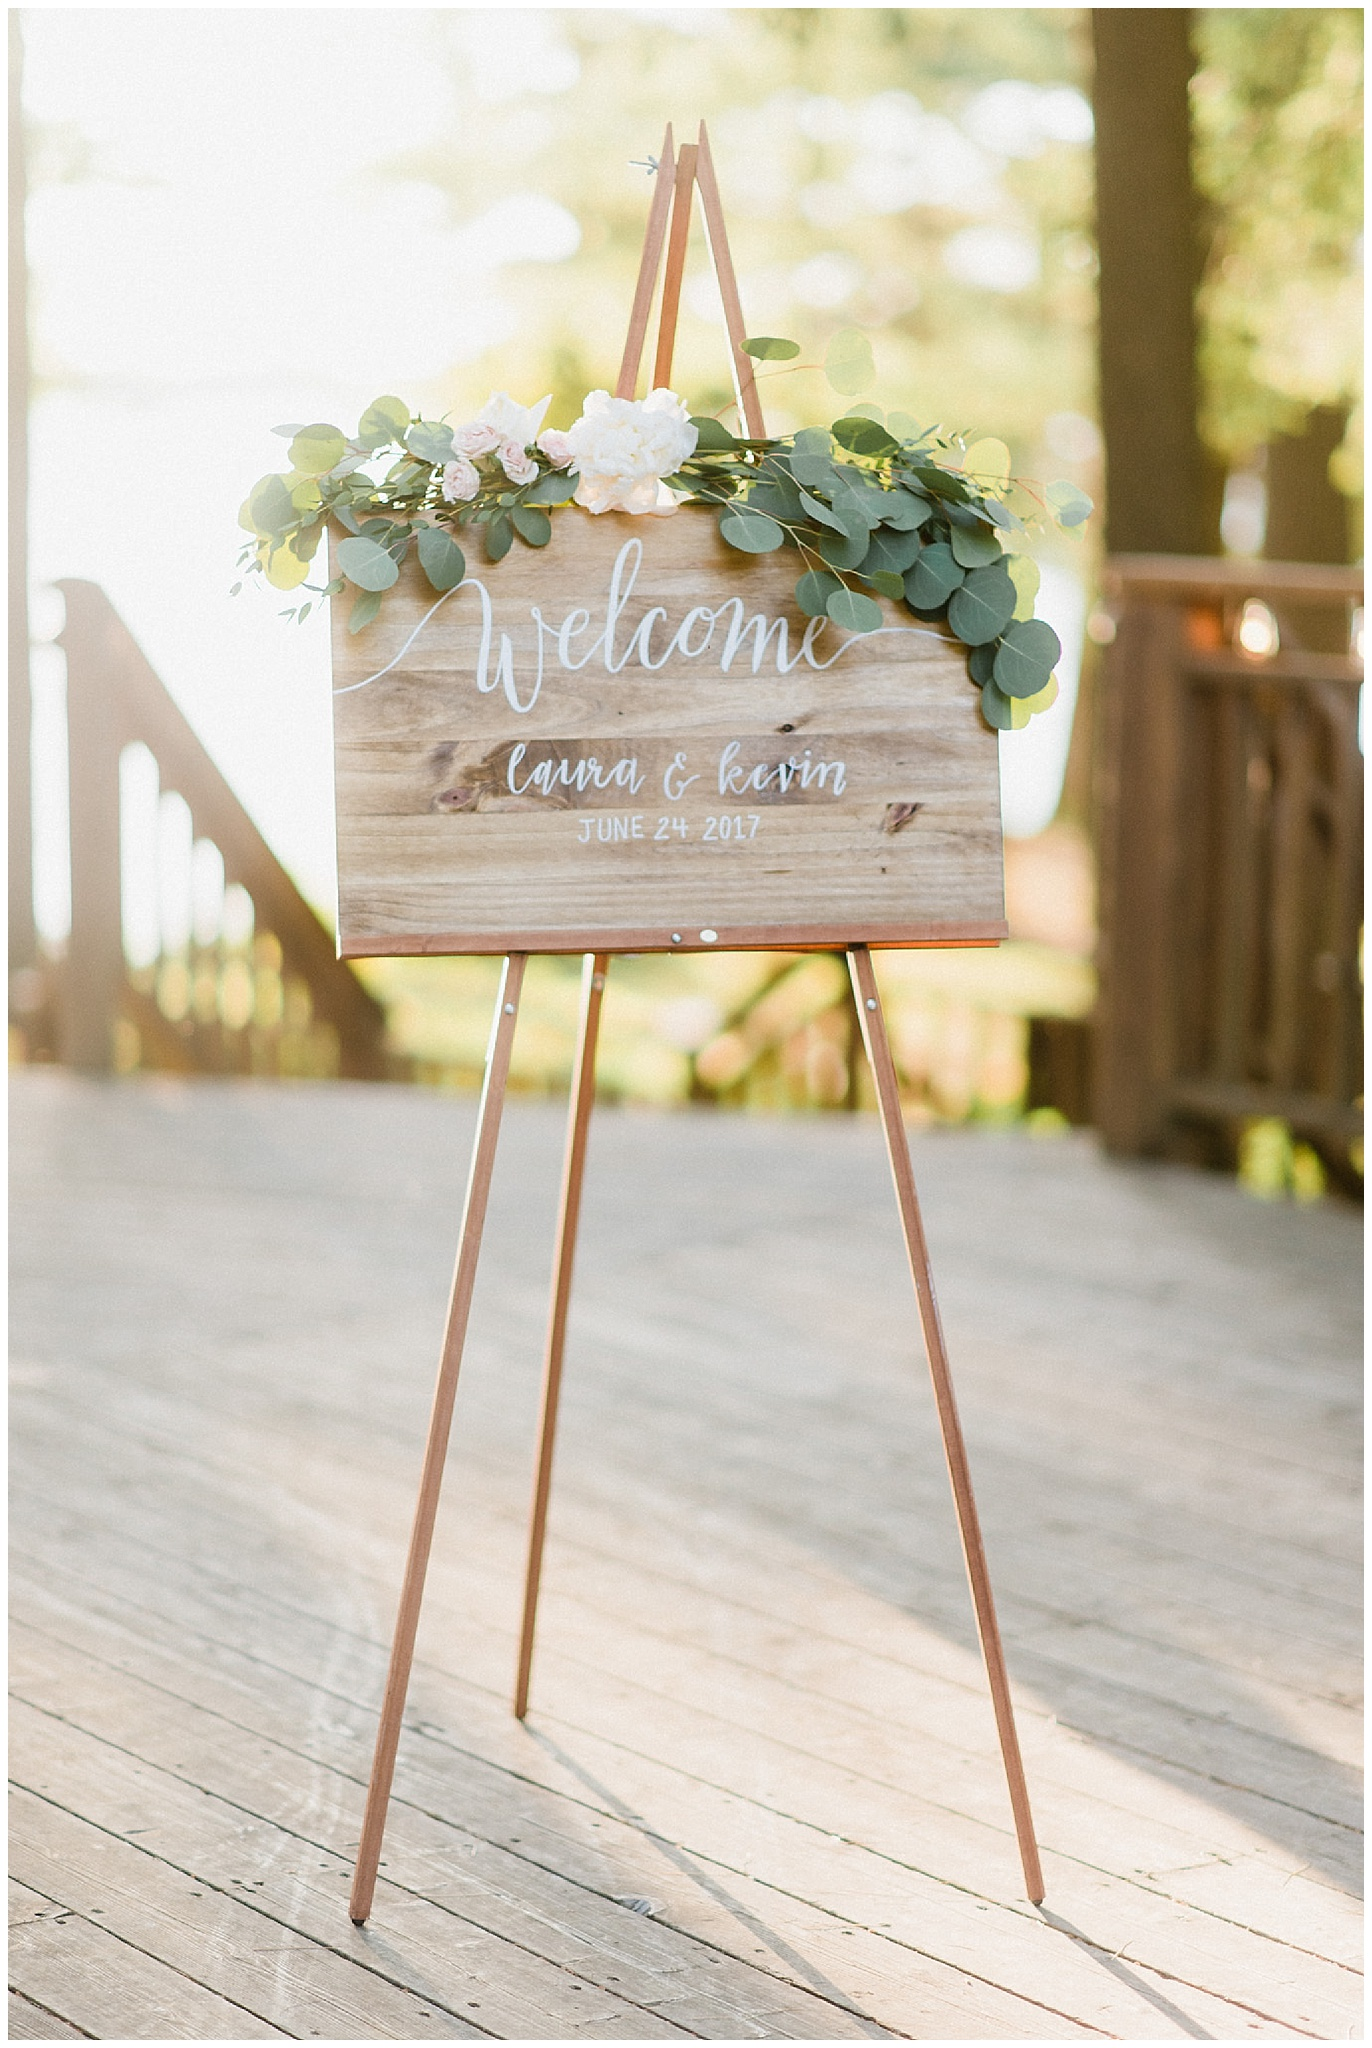 Calligraphy welcome sign with florals and garland by Jenn Kavanagh Photography